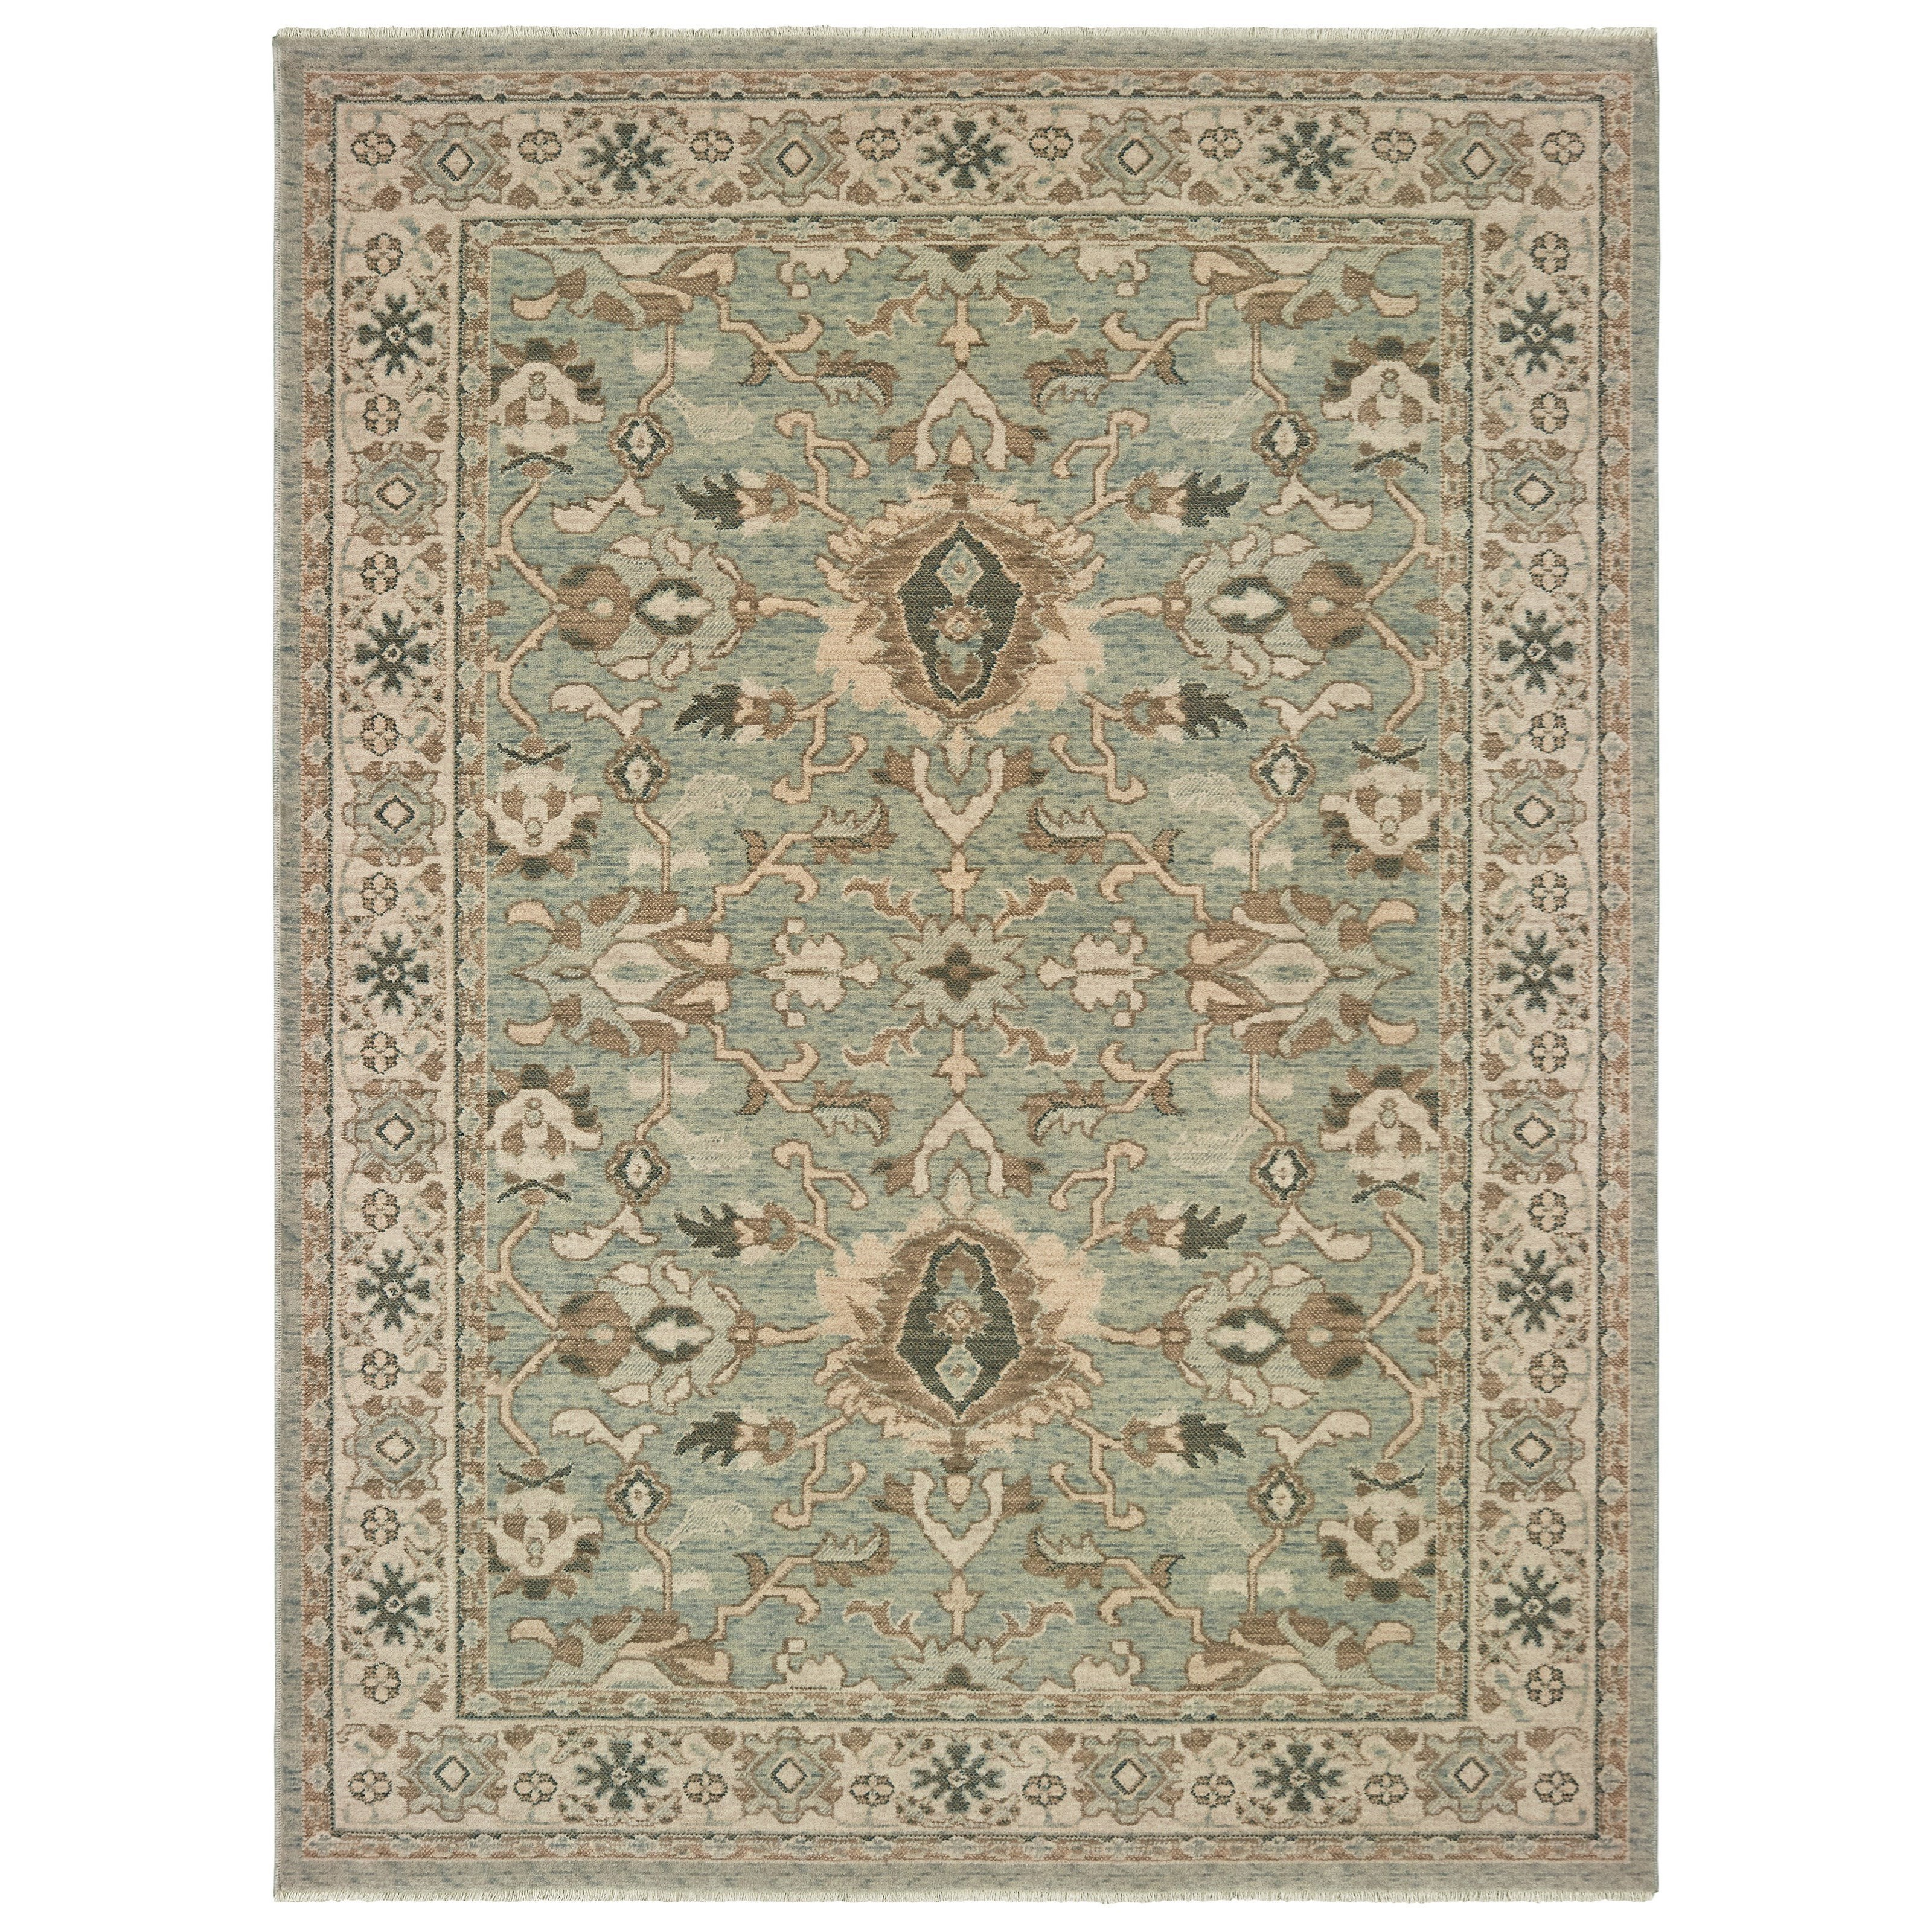 "Anatolia 9'10"" X 12'10"" Rectangle Rug by Oriental Weavers at Darvin Furniture"